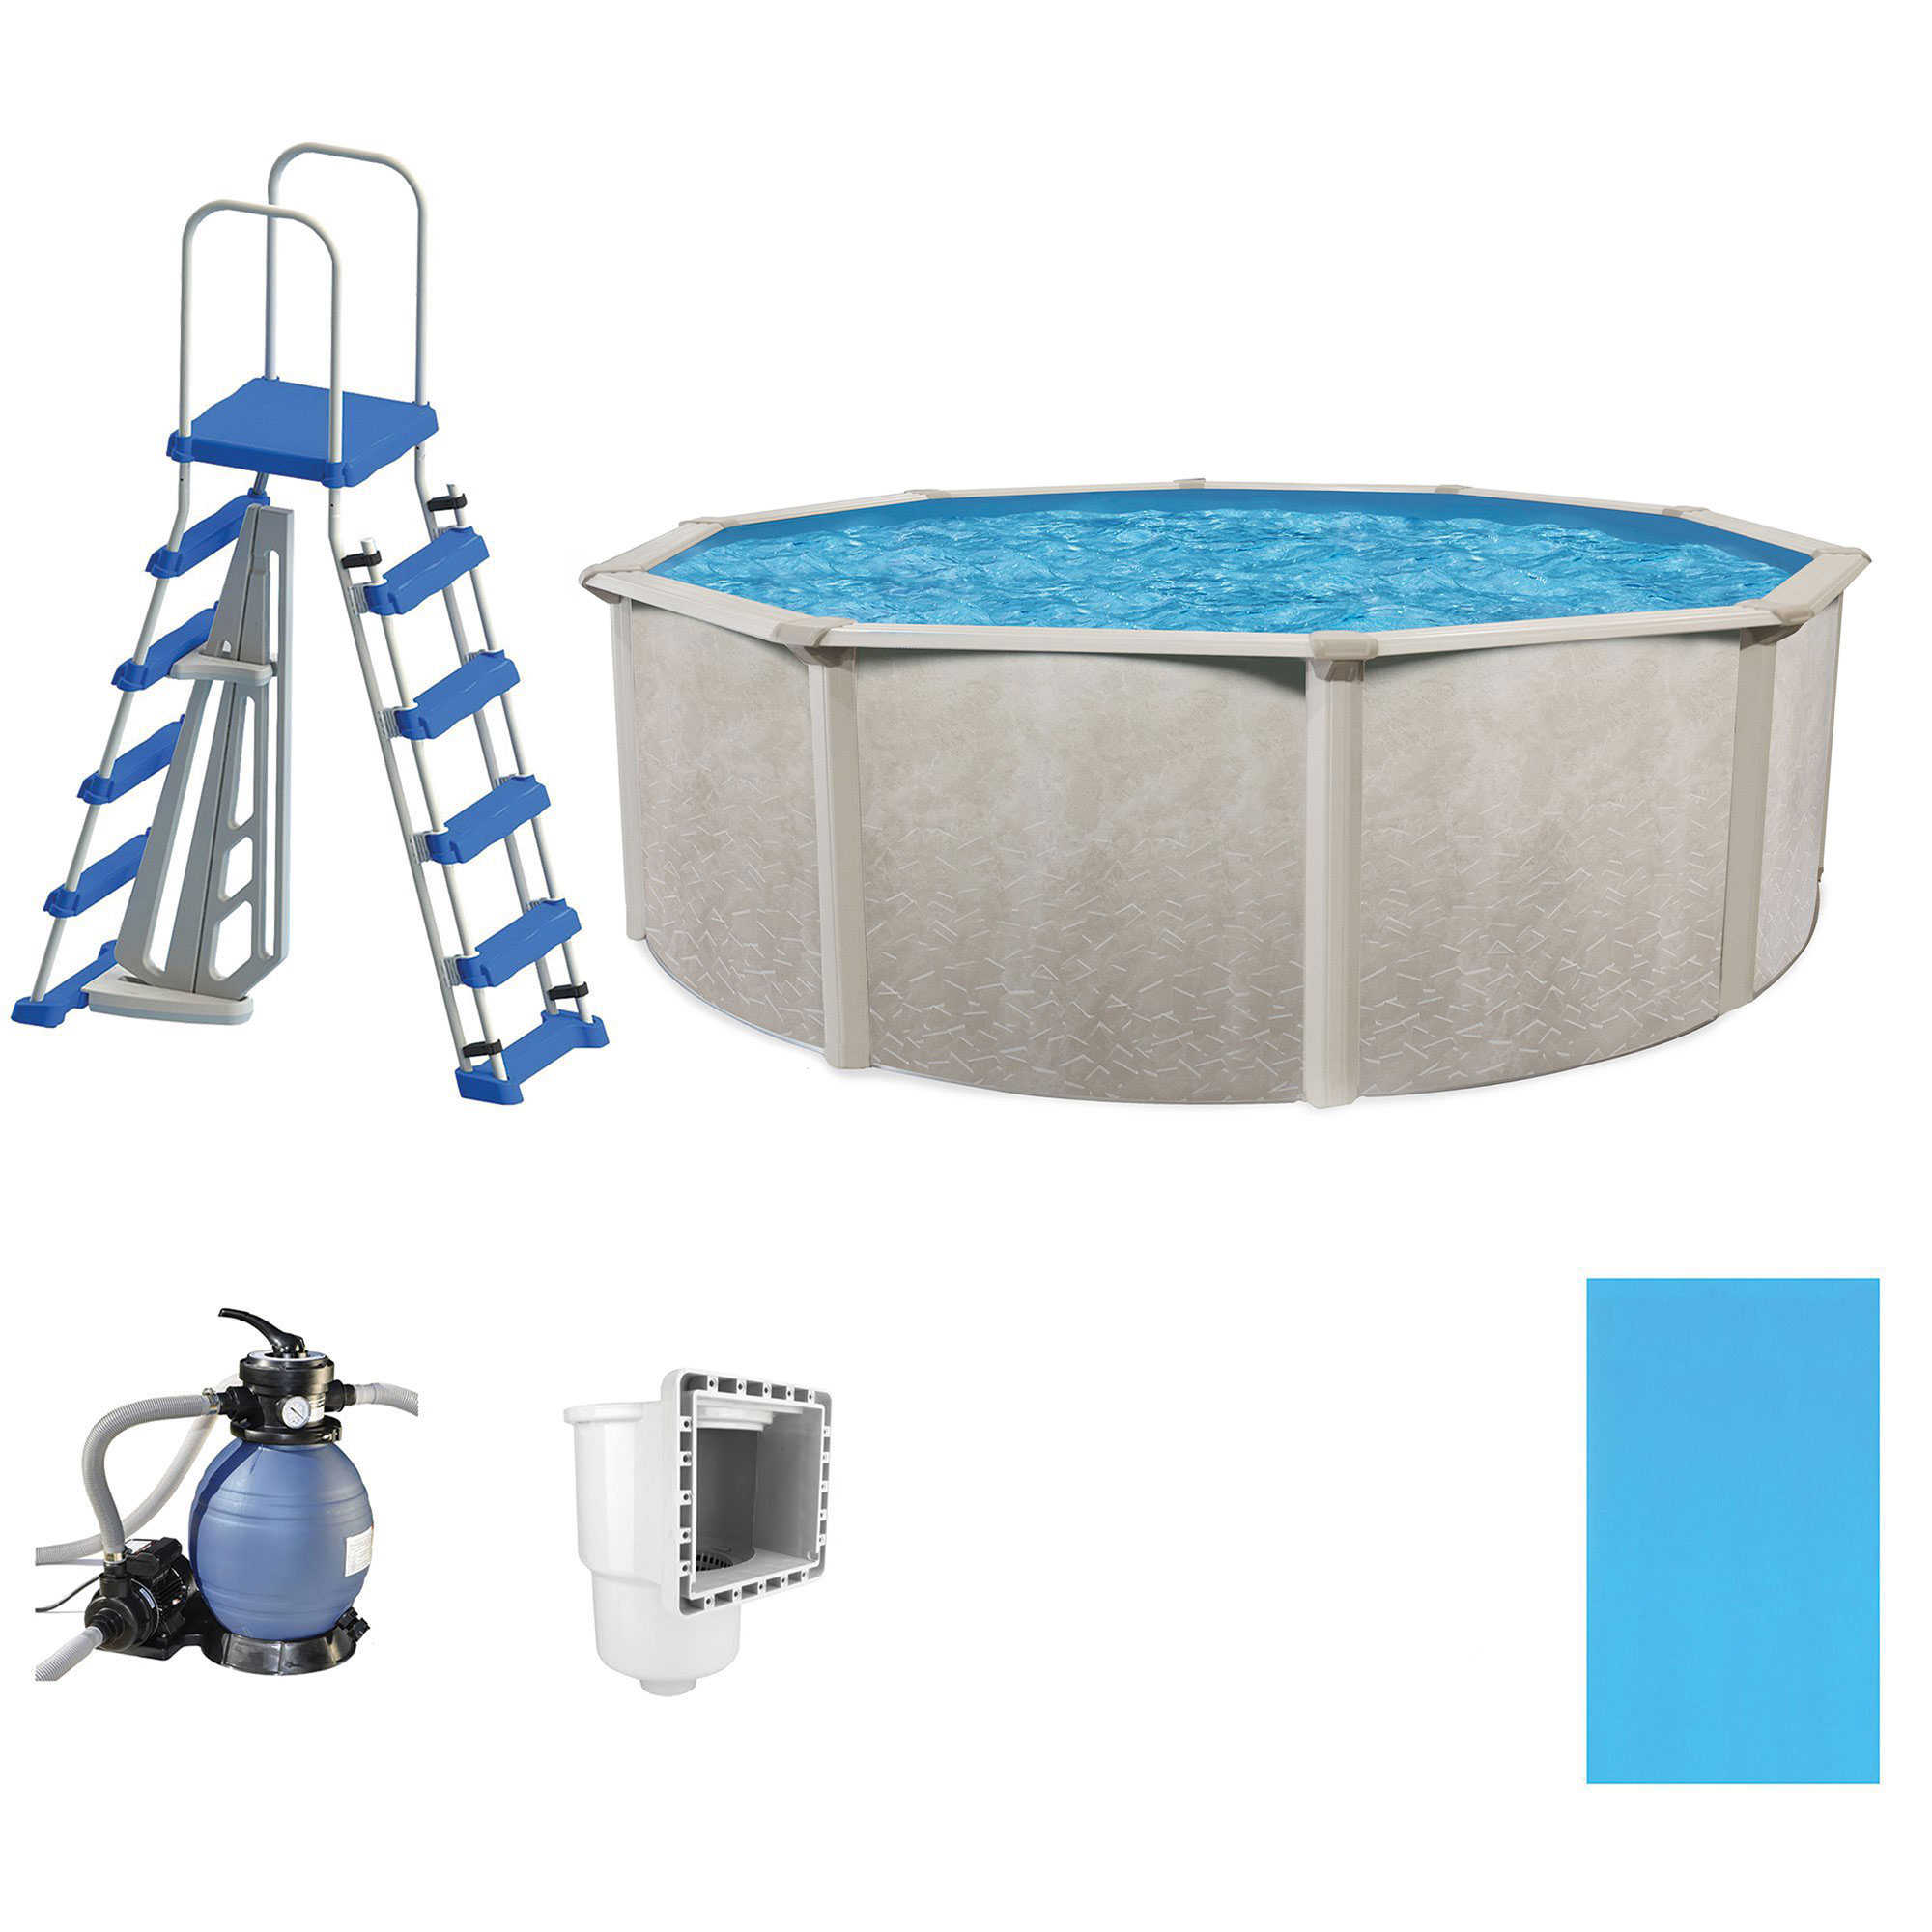 "Cornelius Pools Phoenix 21' x 52"" Frame Above Ground Pool Kit with Pump & Ladder"